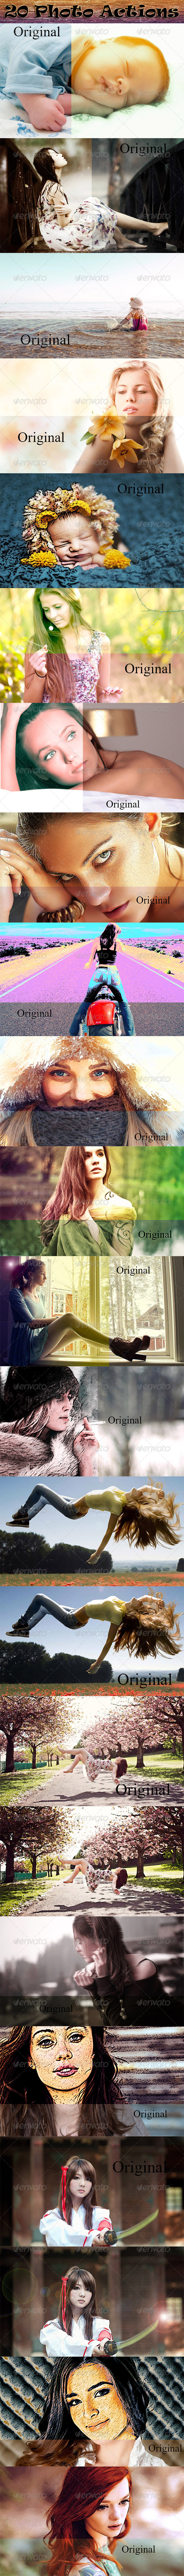 GraphicRiver 20 Photo Actions 8715846